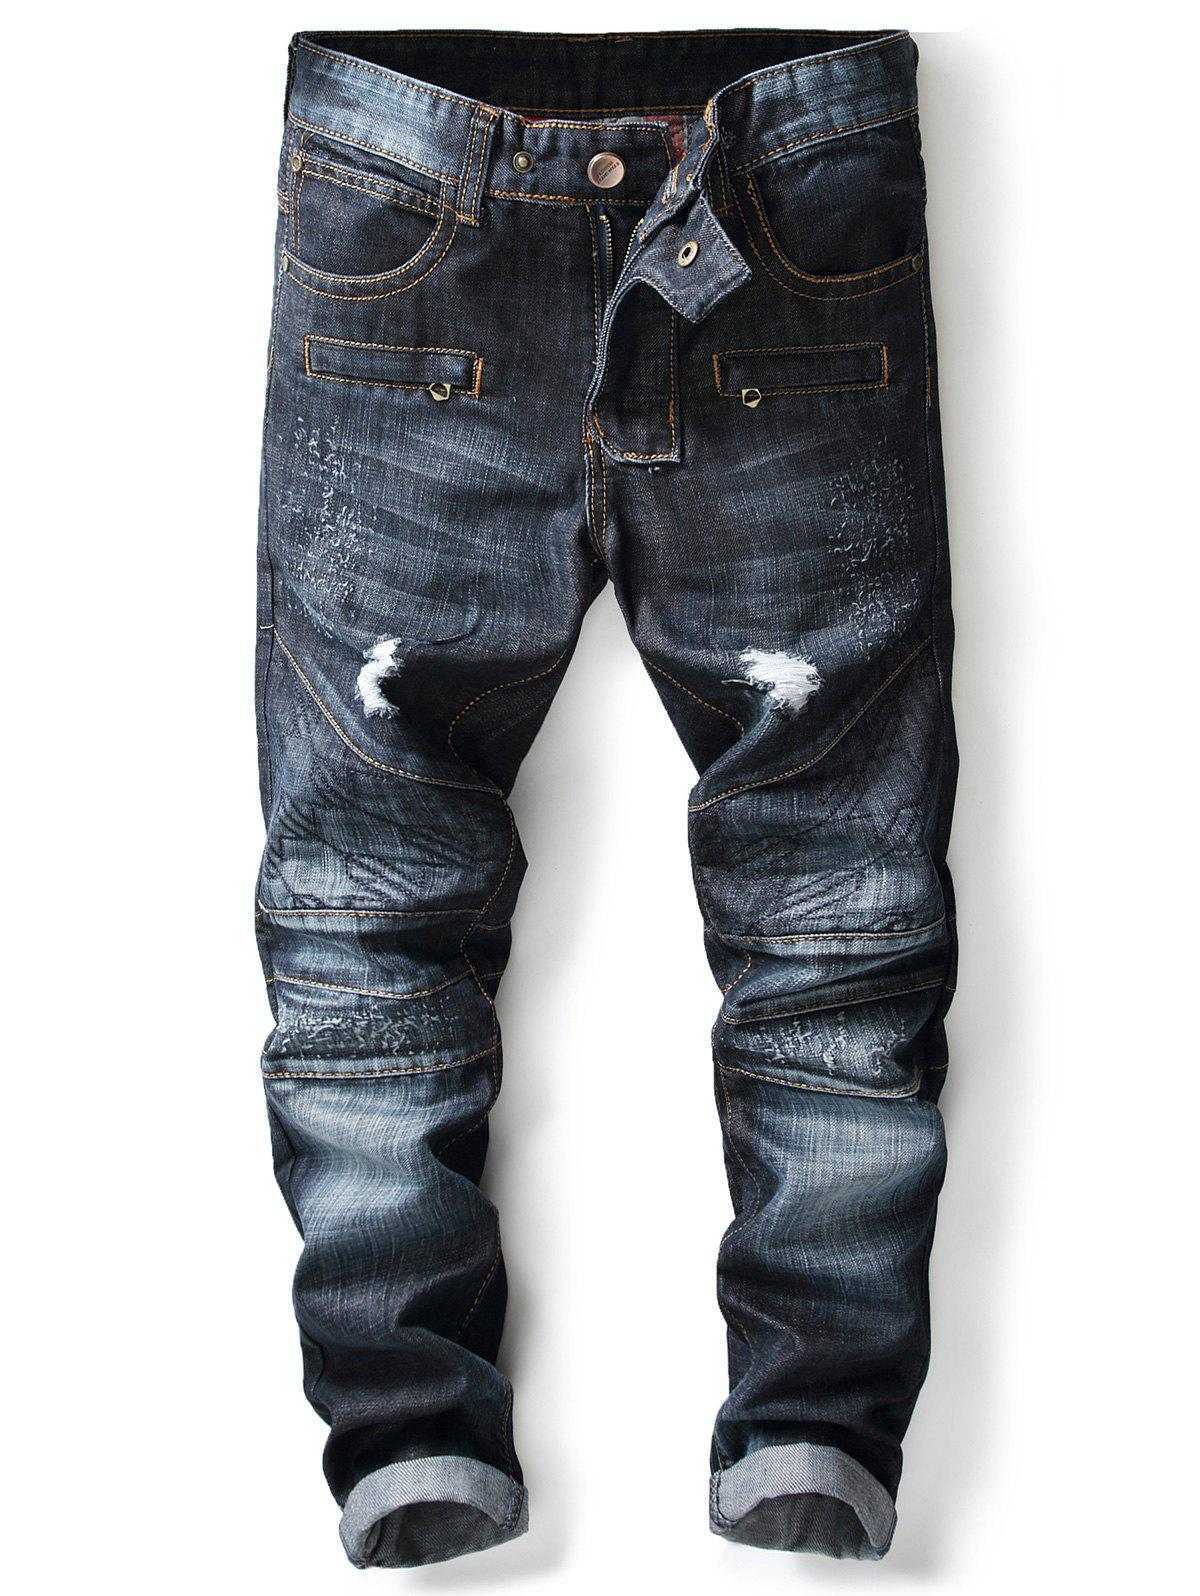 Cheap Panel Design Ripped Jeans